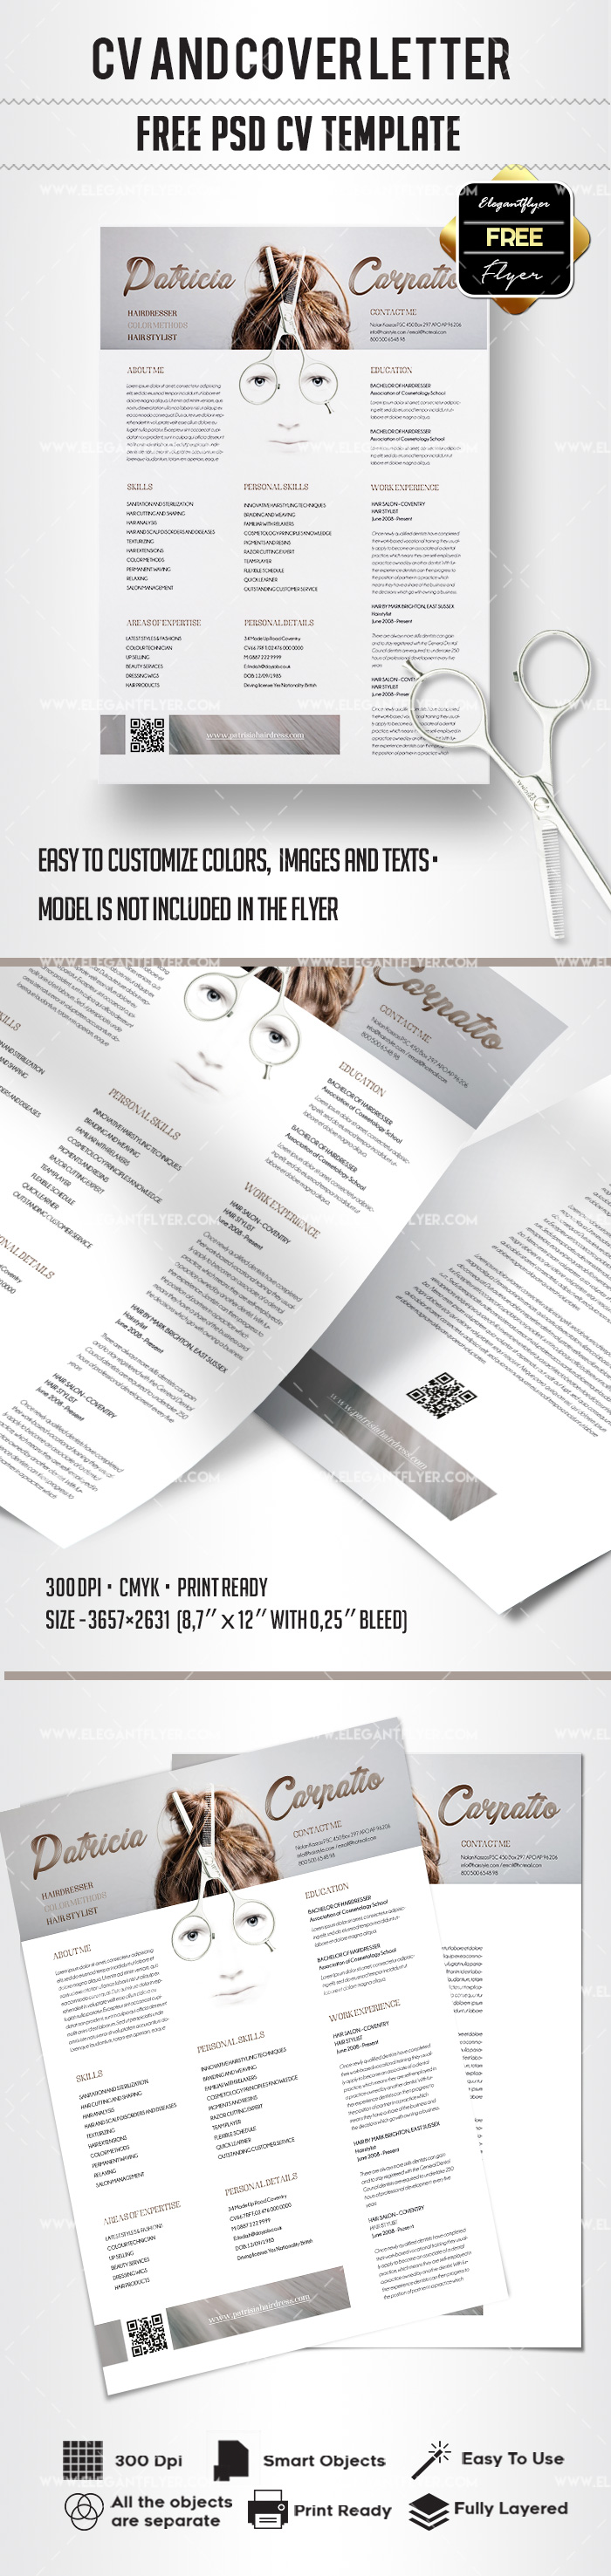 Free Hairdresser CV and Cover Letter PSD Template